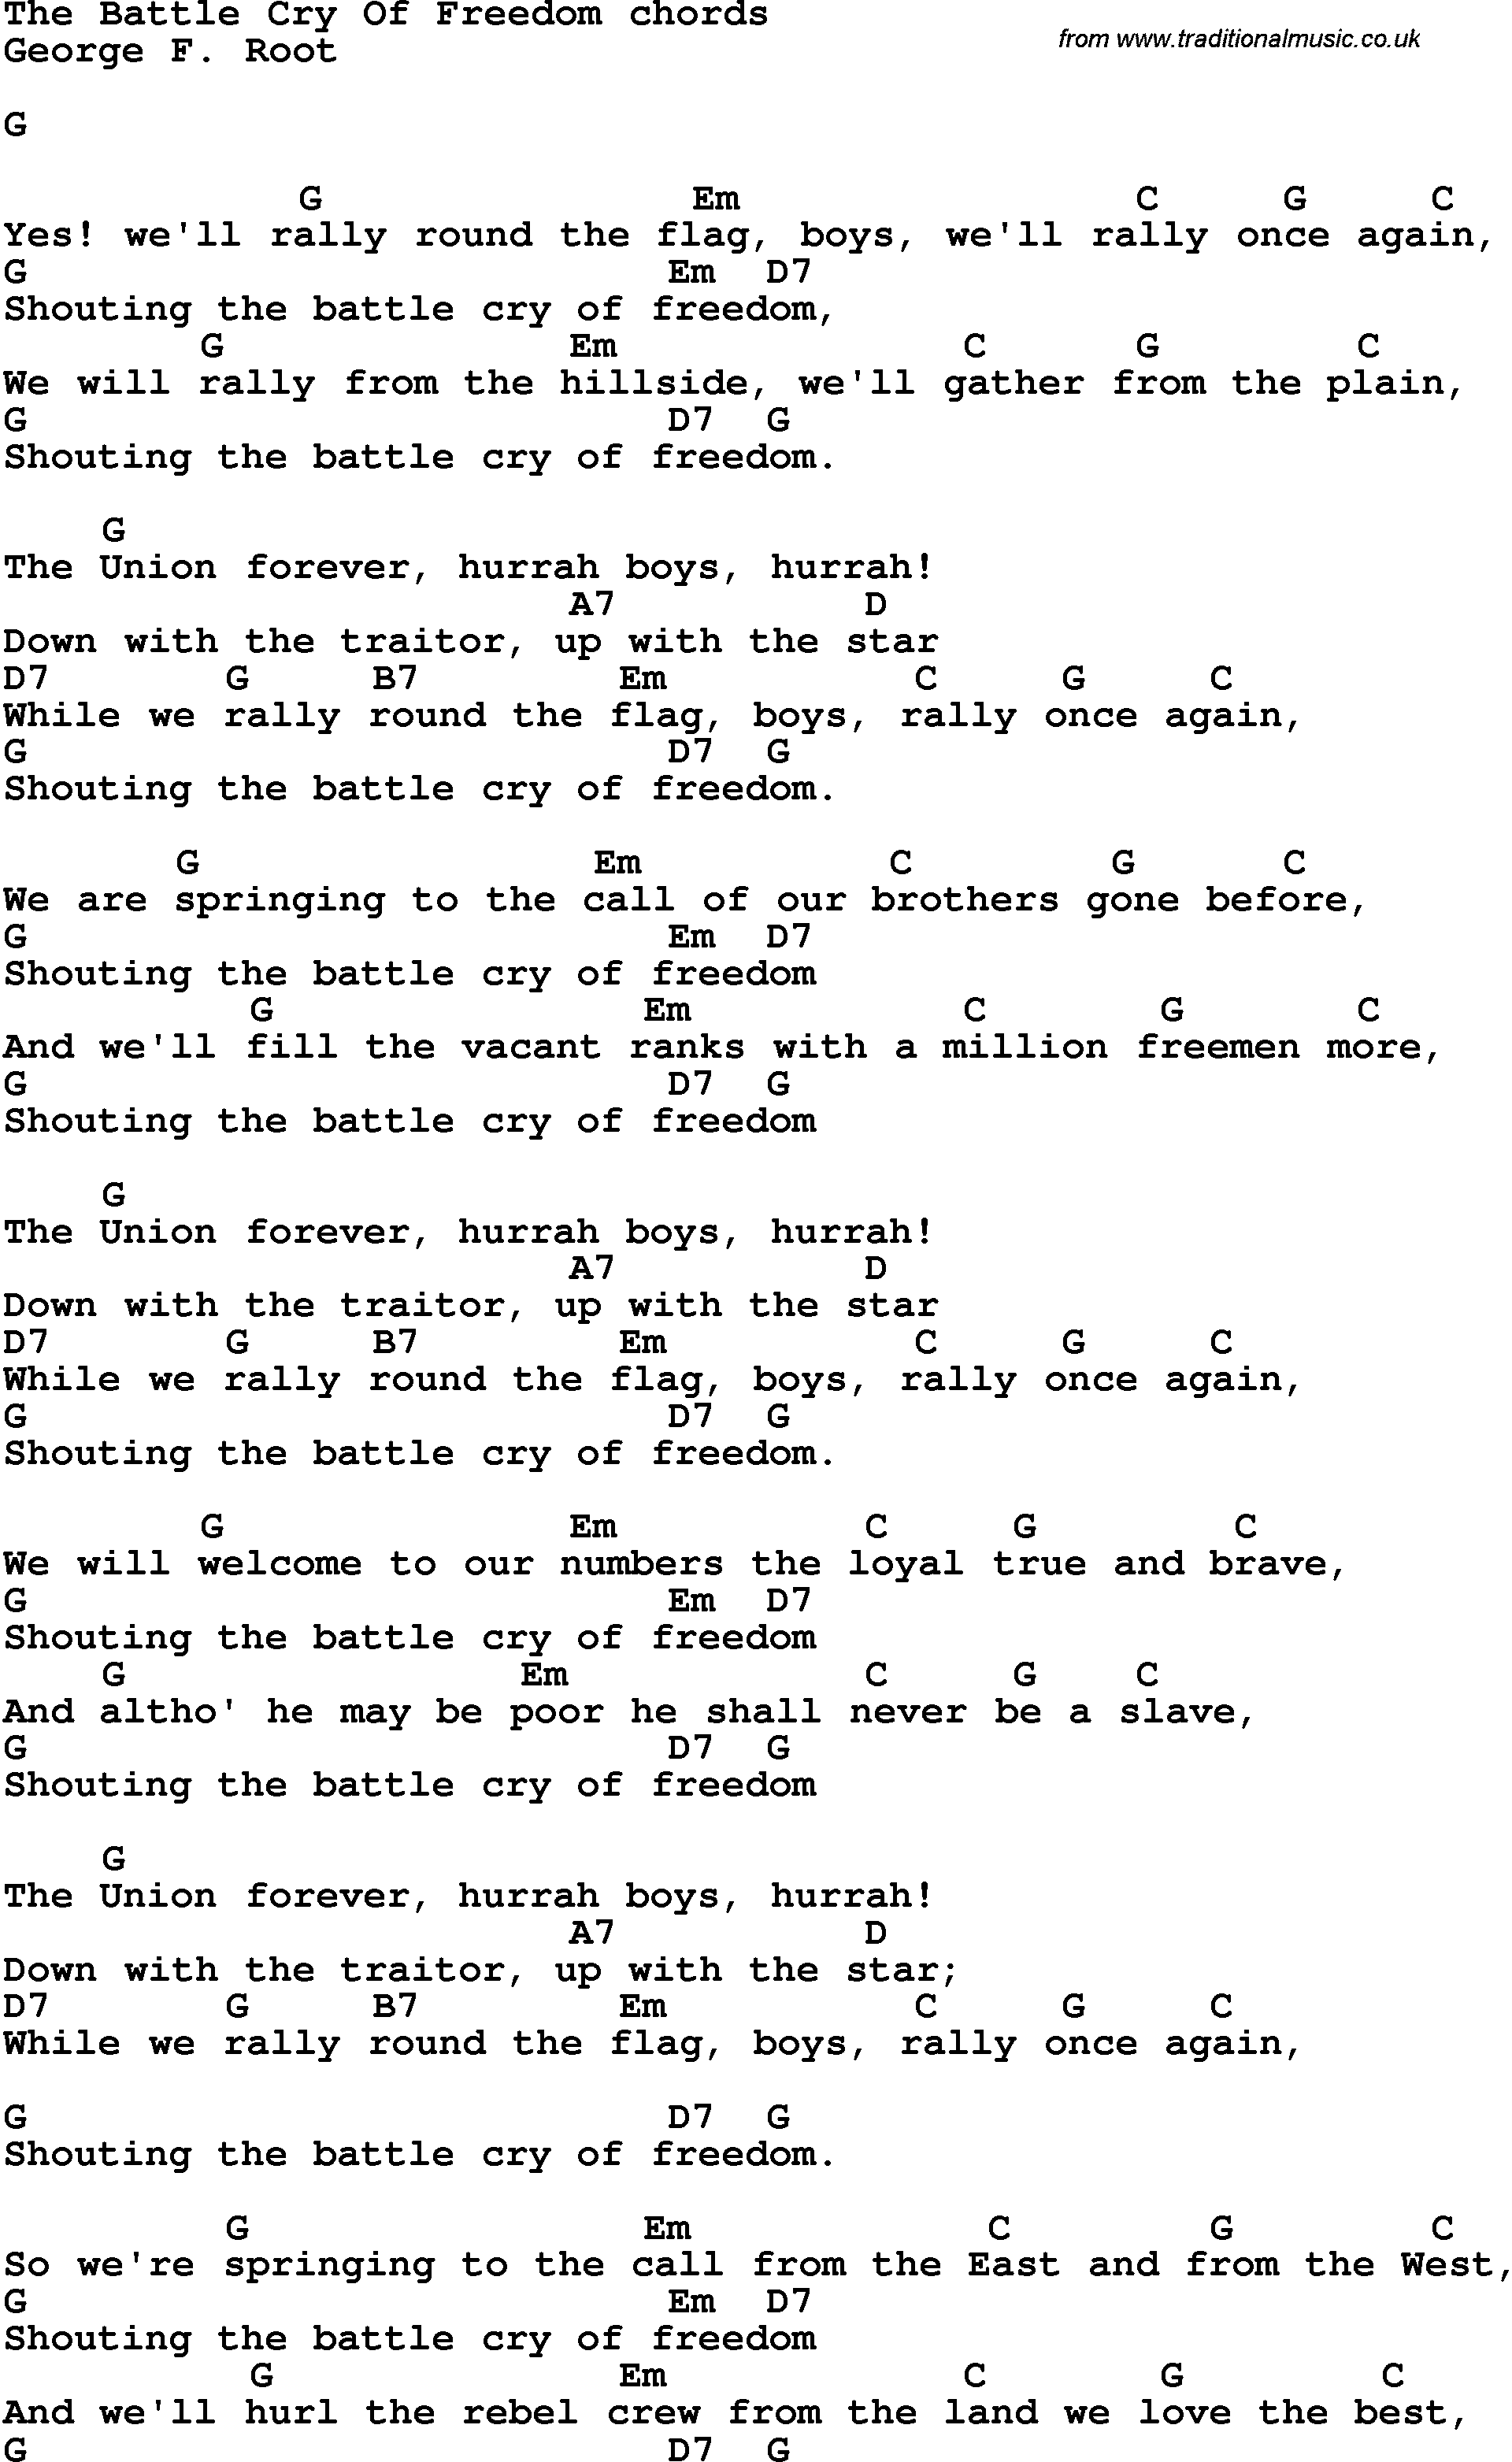 Song Lyrics With Guitar Chords For The Battle Cry Of Freedom